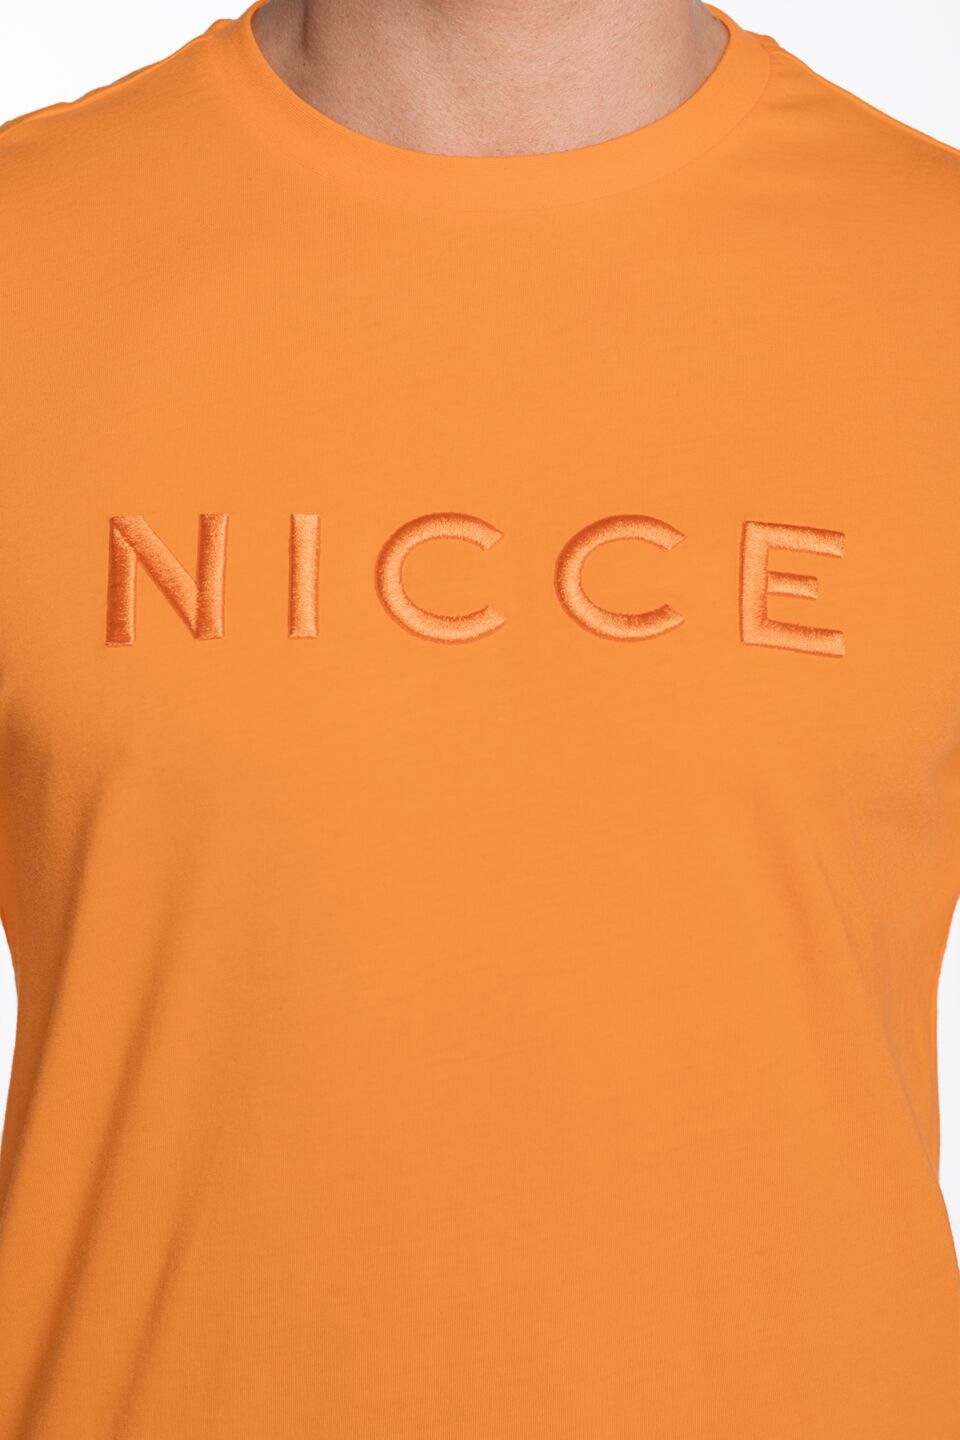 MERCURY T-SHIRT 001-3-09-03-0251 FLAME ORANGE